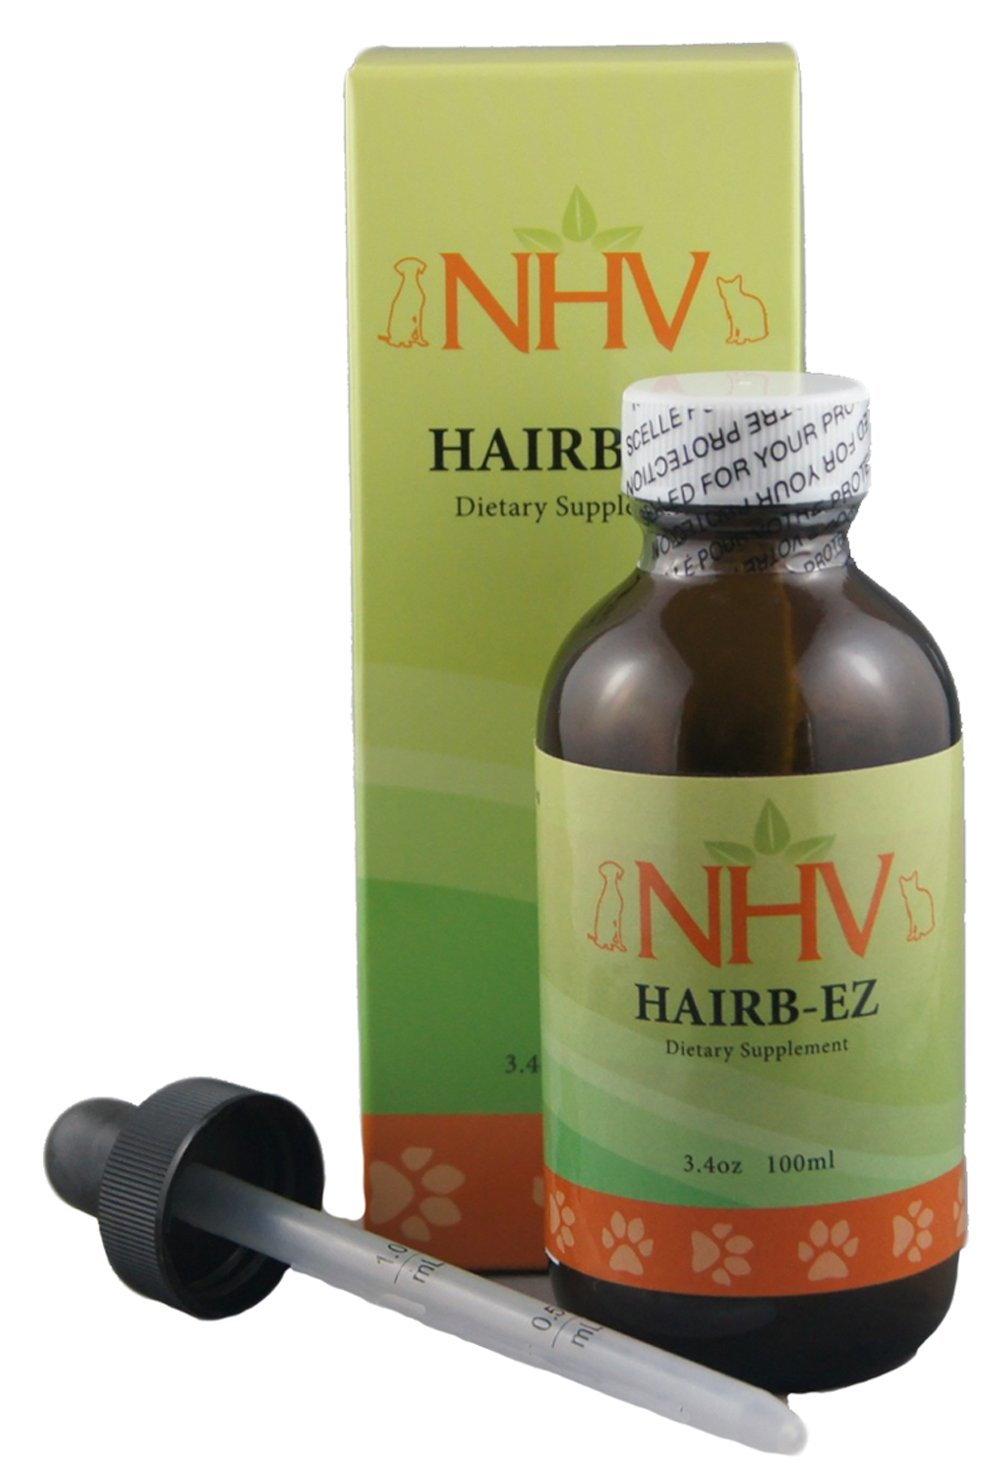 NHV Natural Hairball Remedy for Cat and Dog Hairballs Hairb-ez by NHV (Image #1)